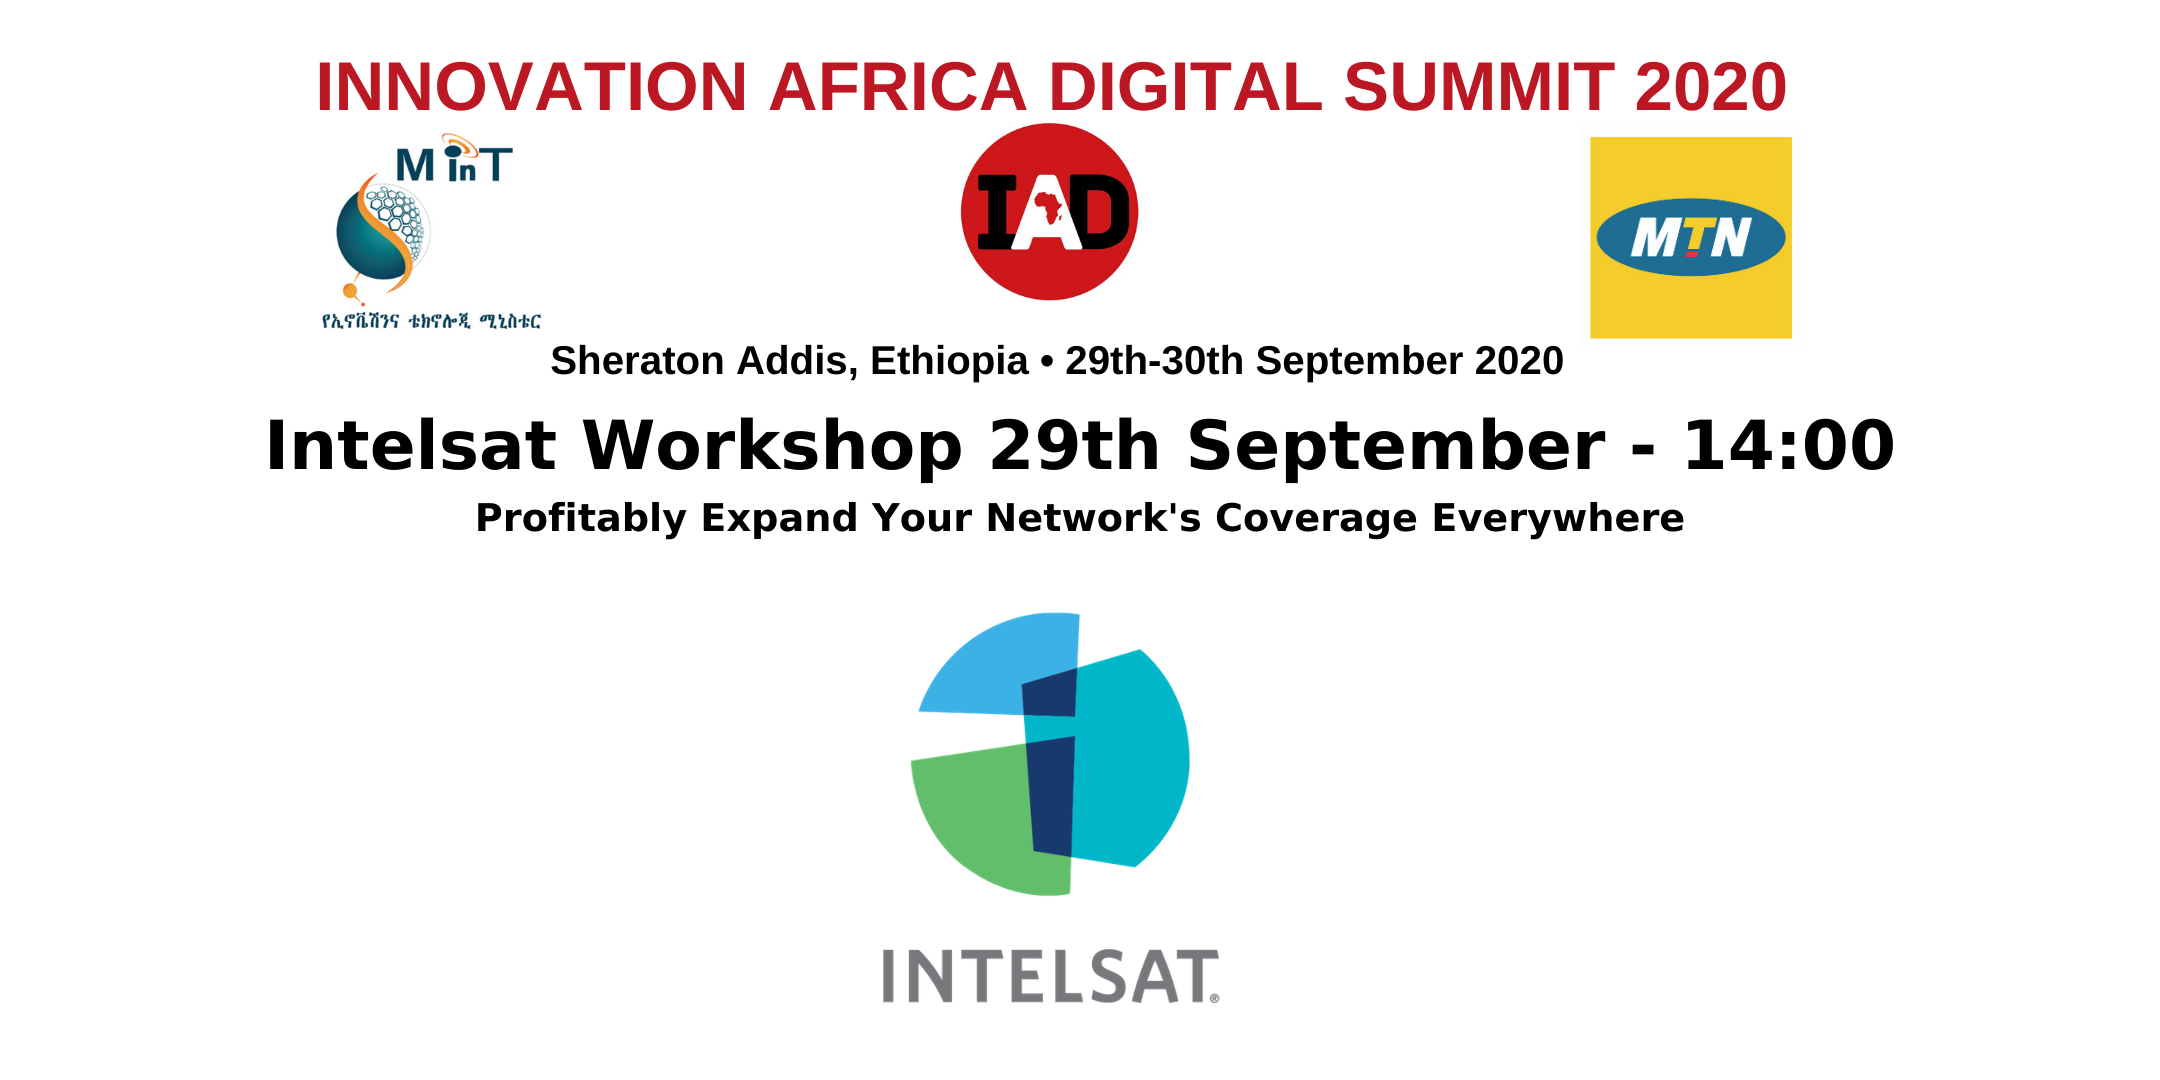 Intelsat Workshop – Profitably Expand Your Network's Coverage Everywhere